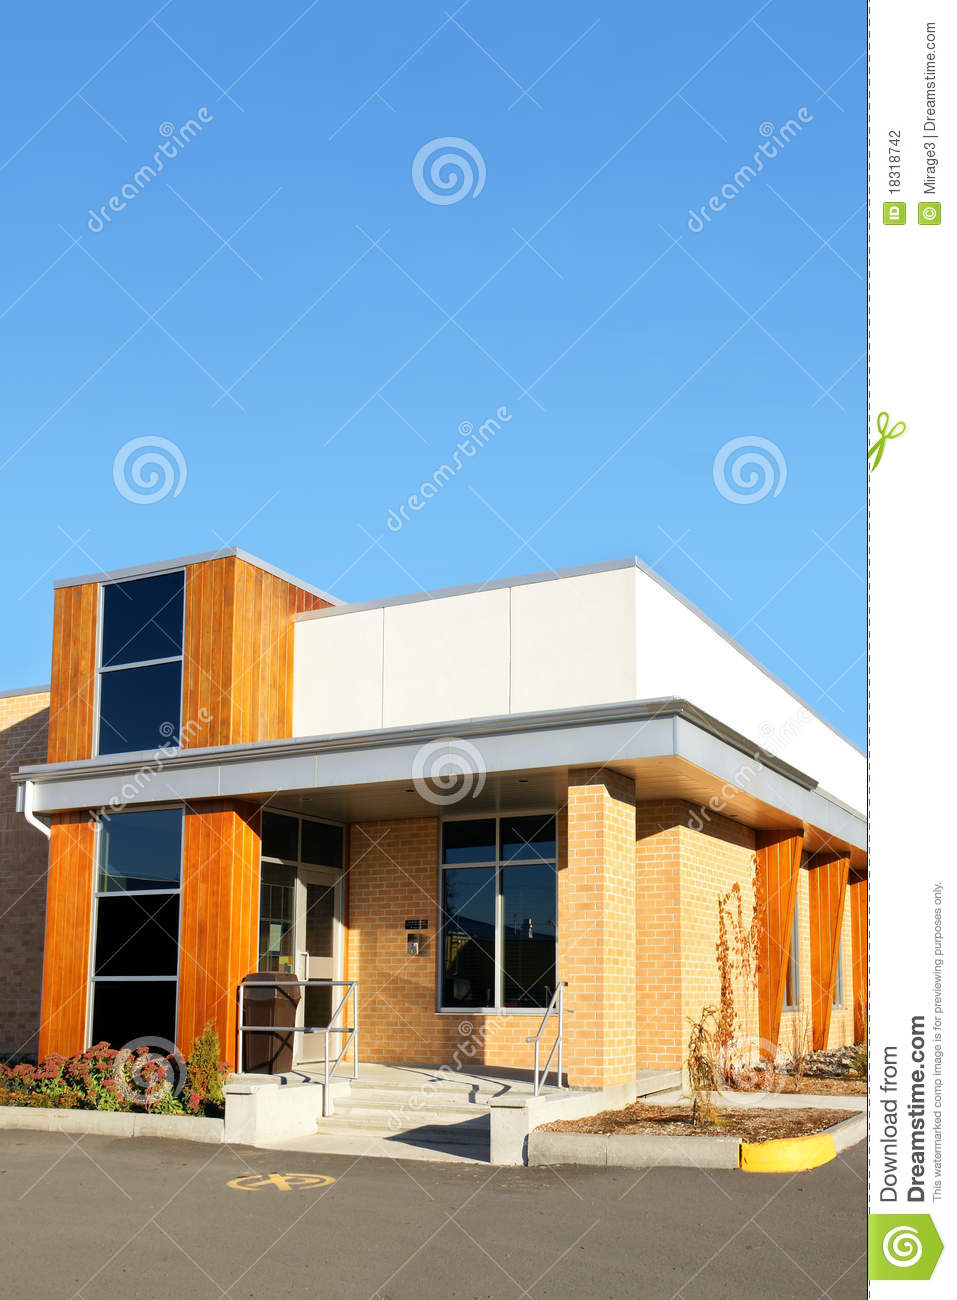 7 886 Small Office Building Photos Free Royalty Free Stock Photos From Dreamstime